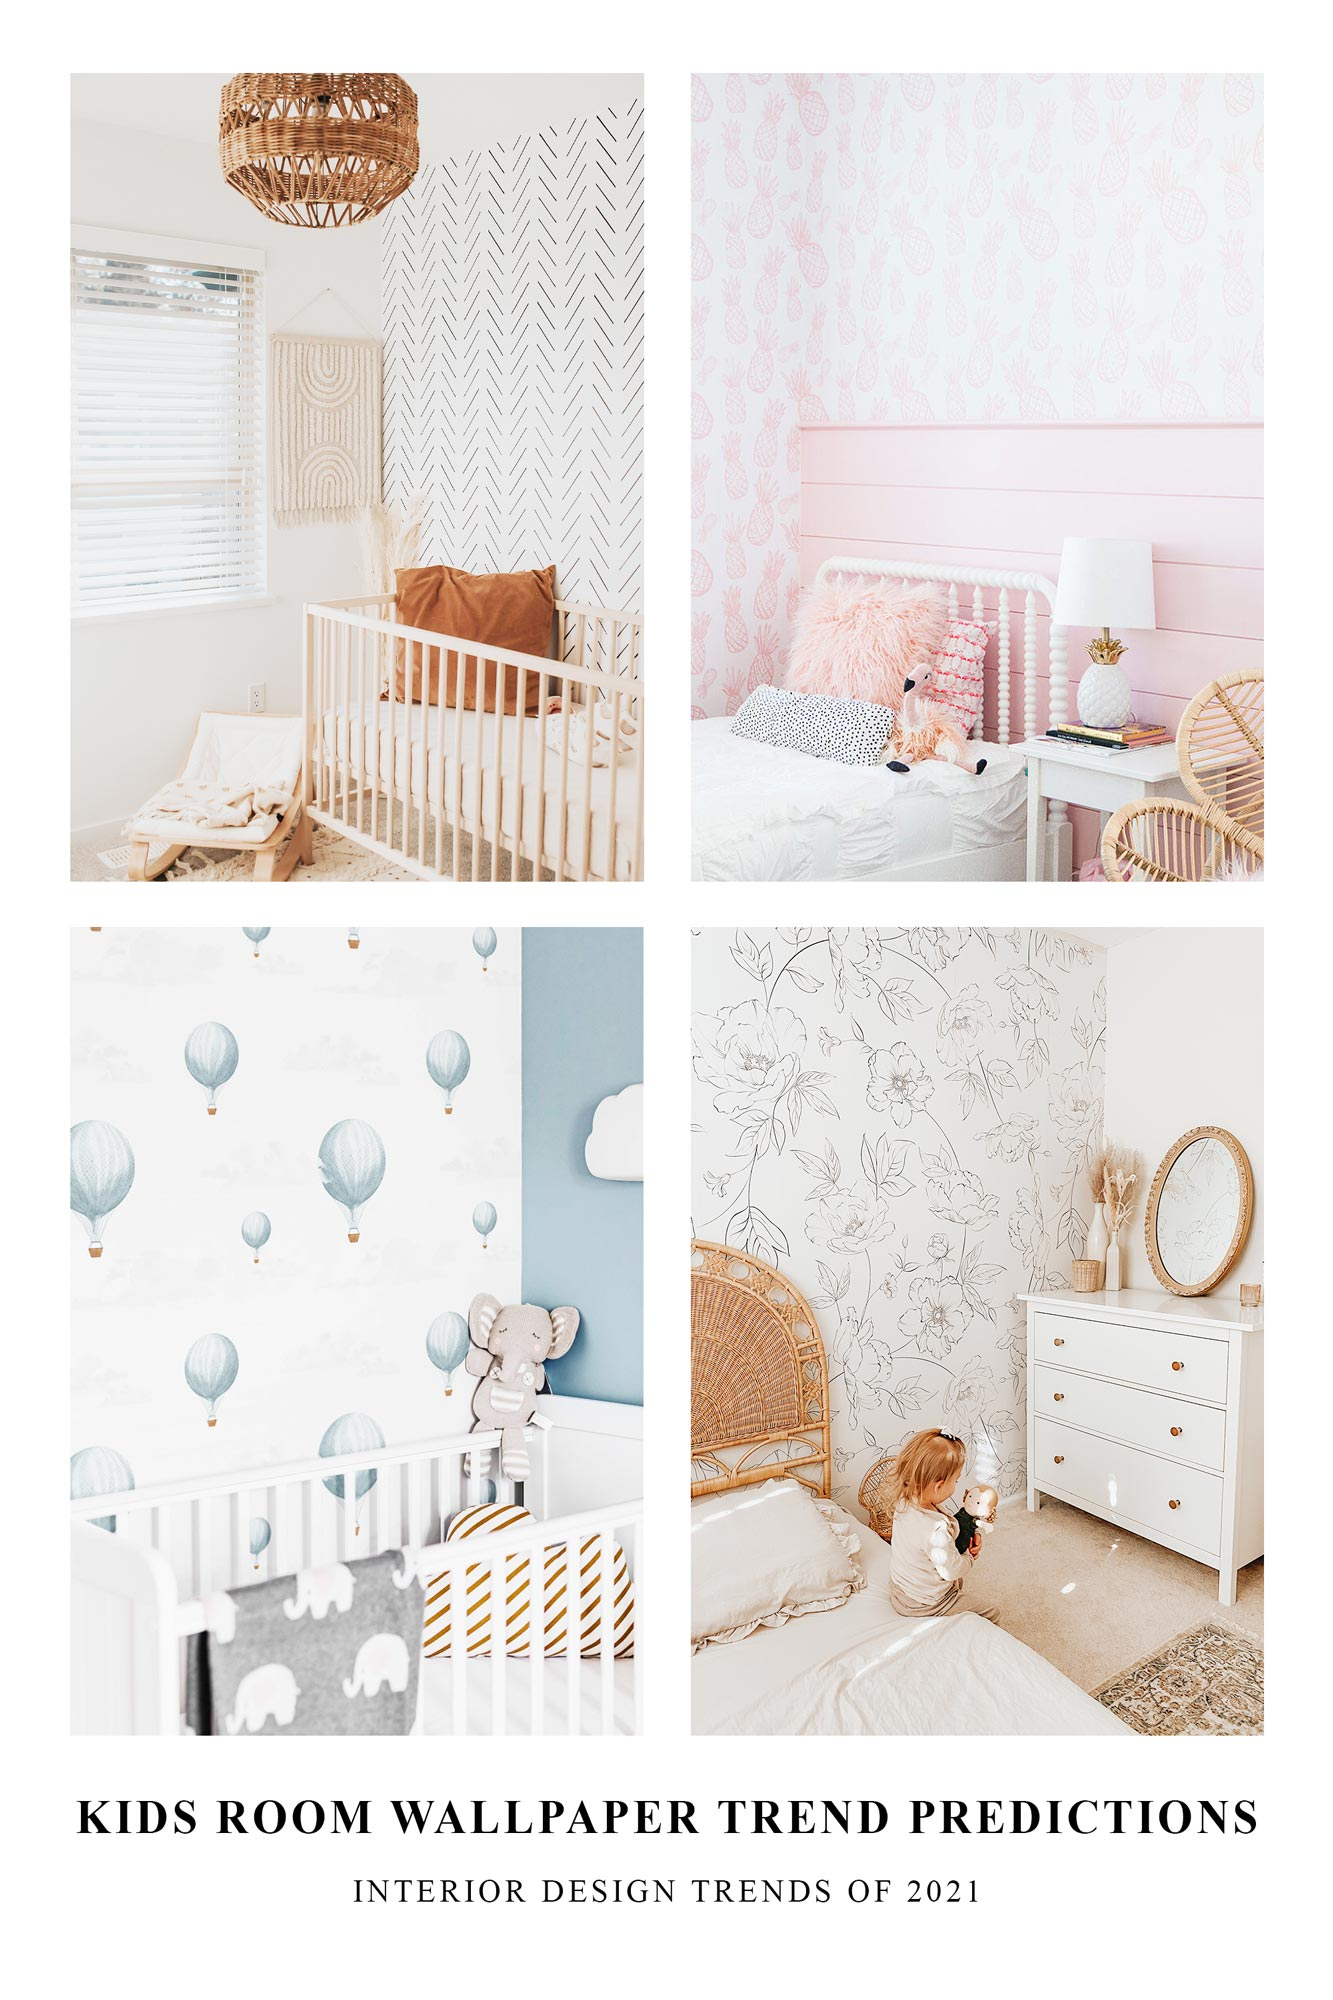 Kids room wallpaper trend predictions for 2021